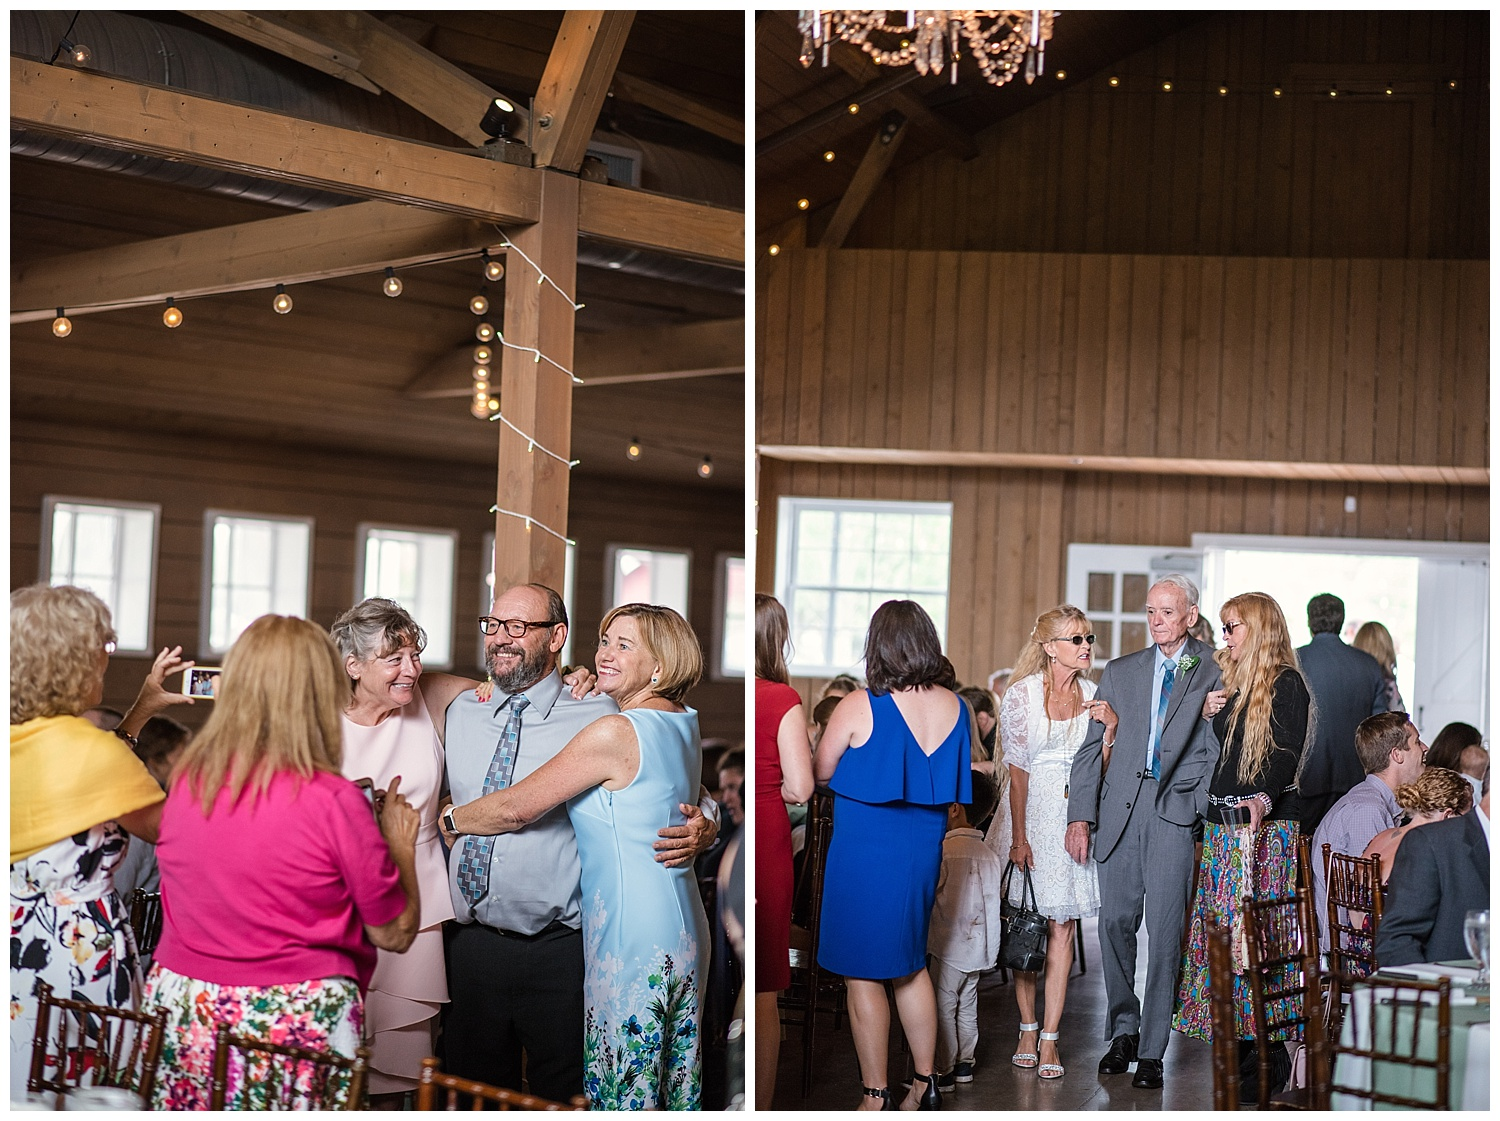 wedding reception details at the barn at raccoon creek, colorado wedding photographer, denver wedding photographer, colorado elopement photographer, rocky mountain wedding photographer